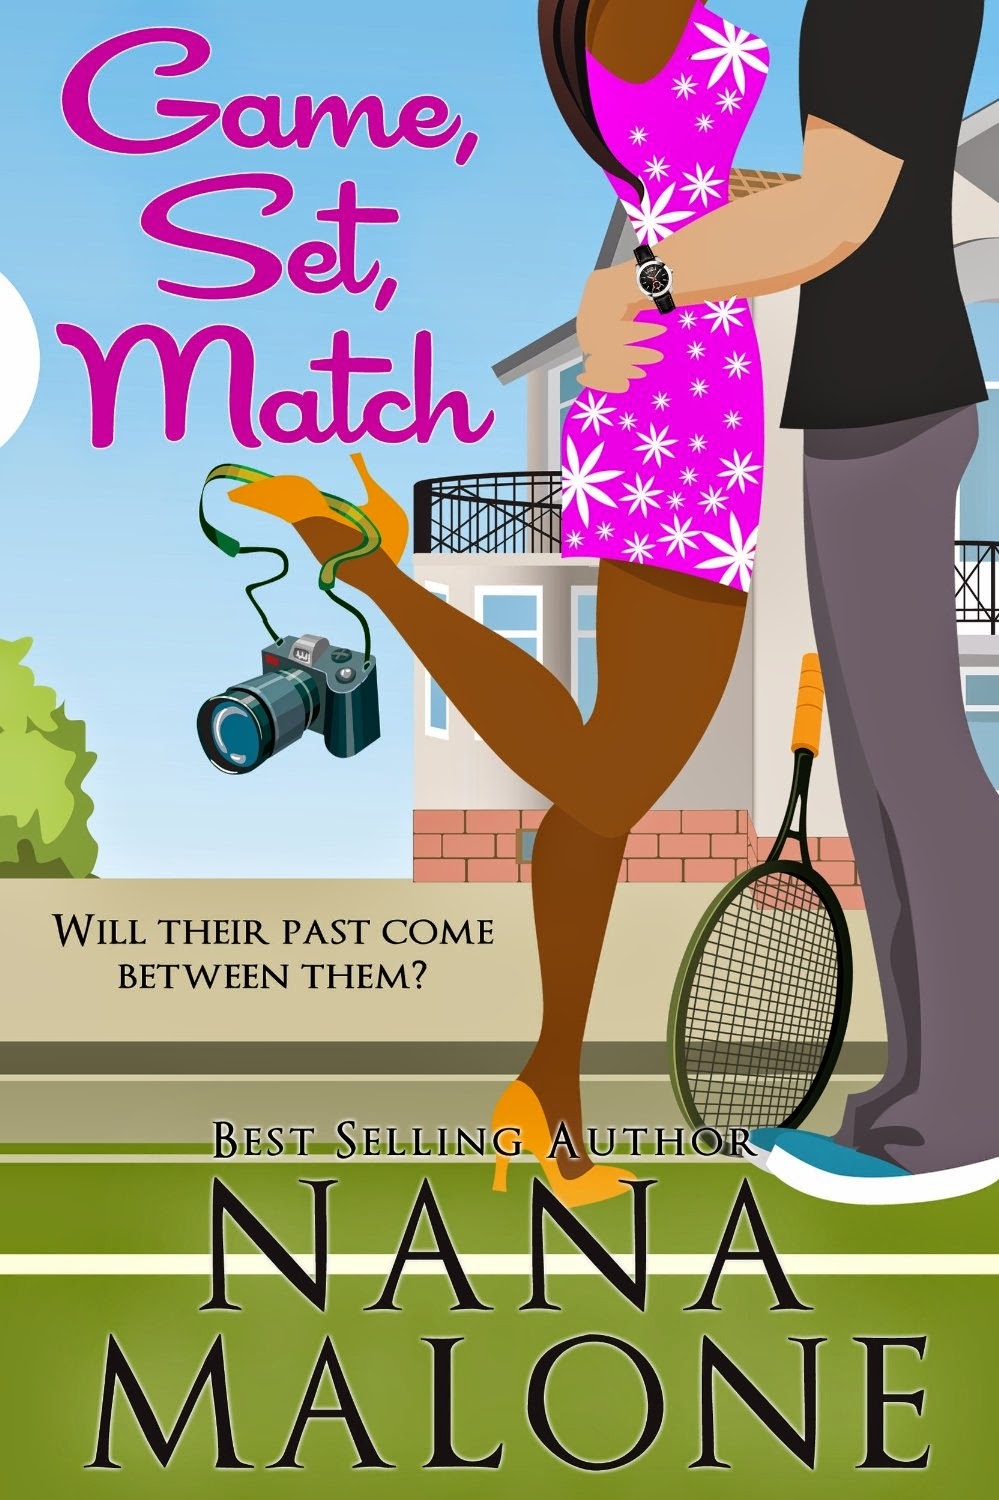 letmecrossover_blog_michele_mattos_blogger_book_beachyreads_reviews_kindle_fire_gamesetmatch_nana_malone